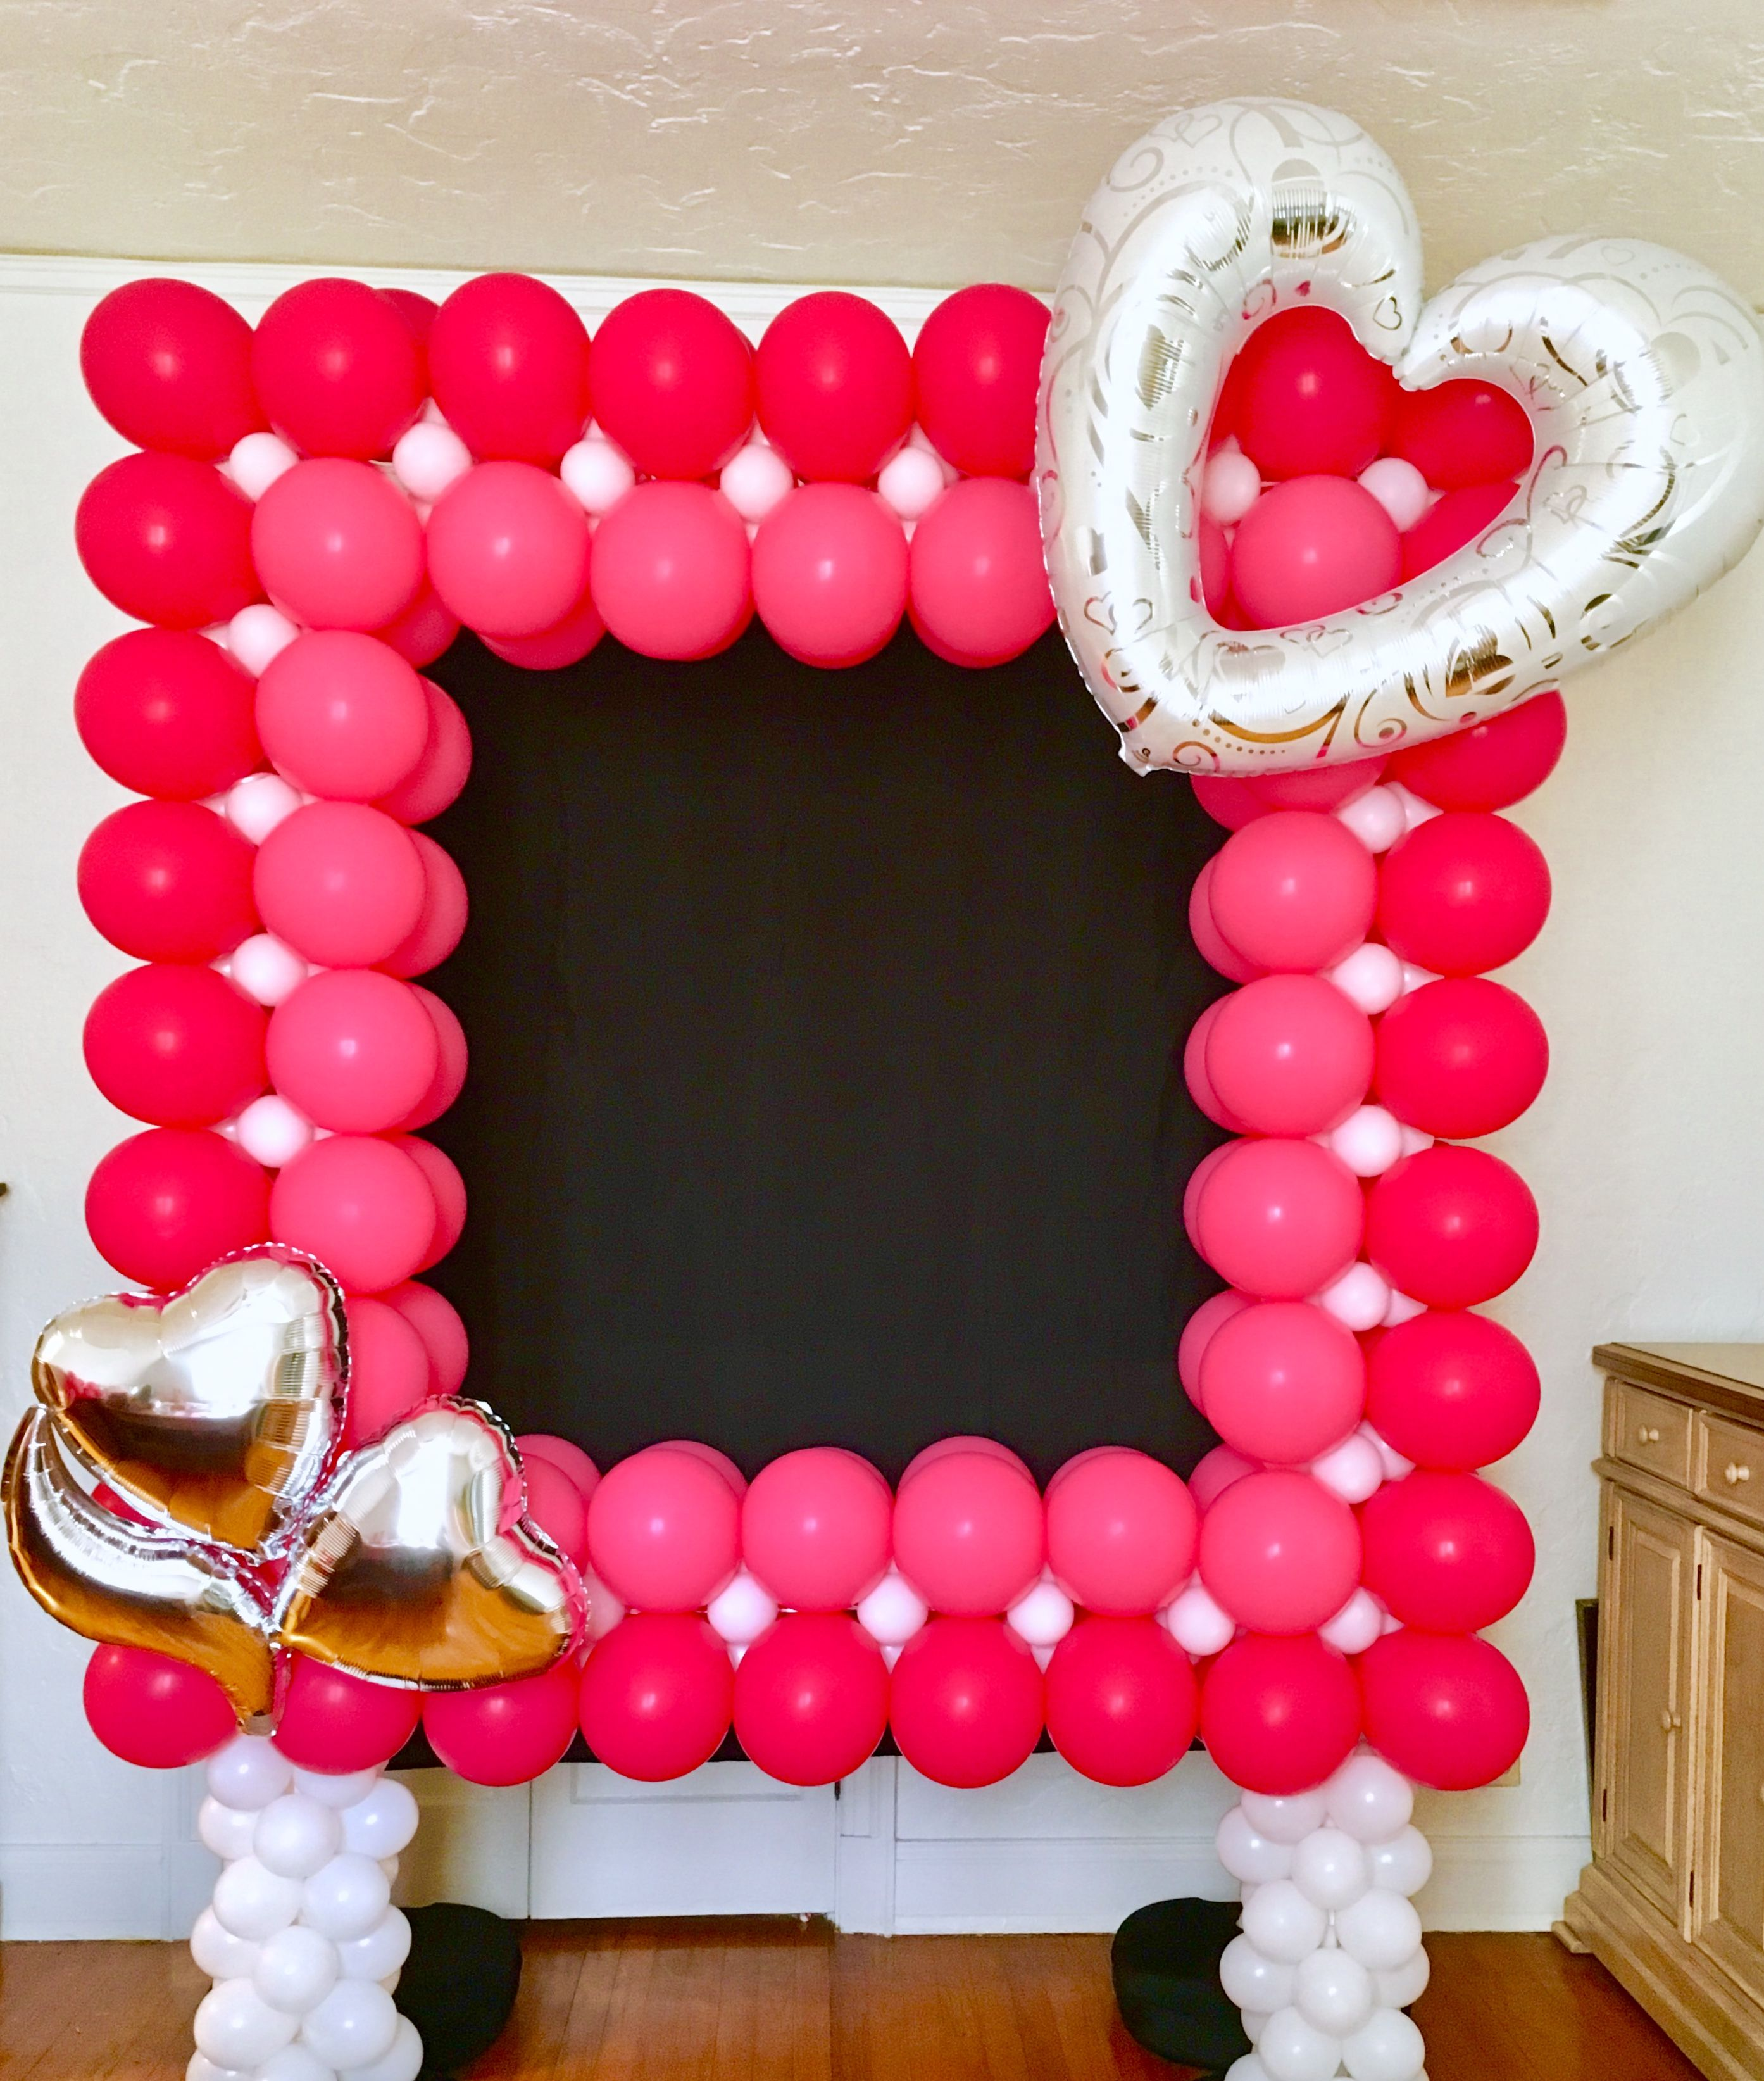 Valentines Day Photo Op Balloon Frame A cute addition to party